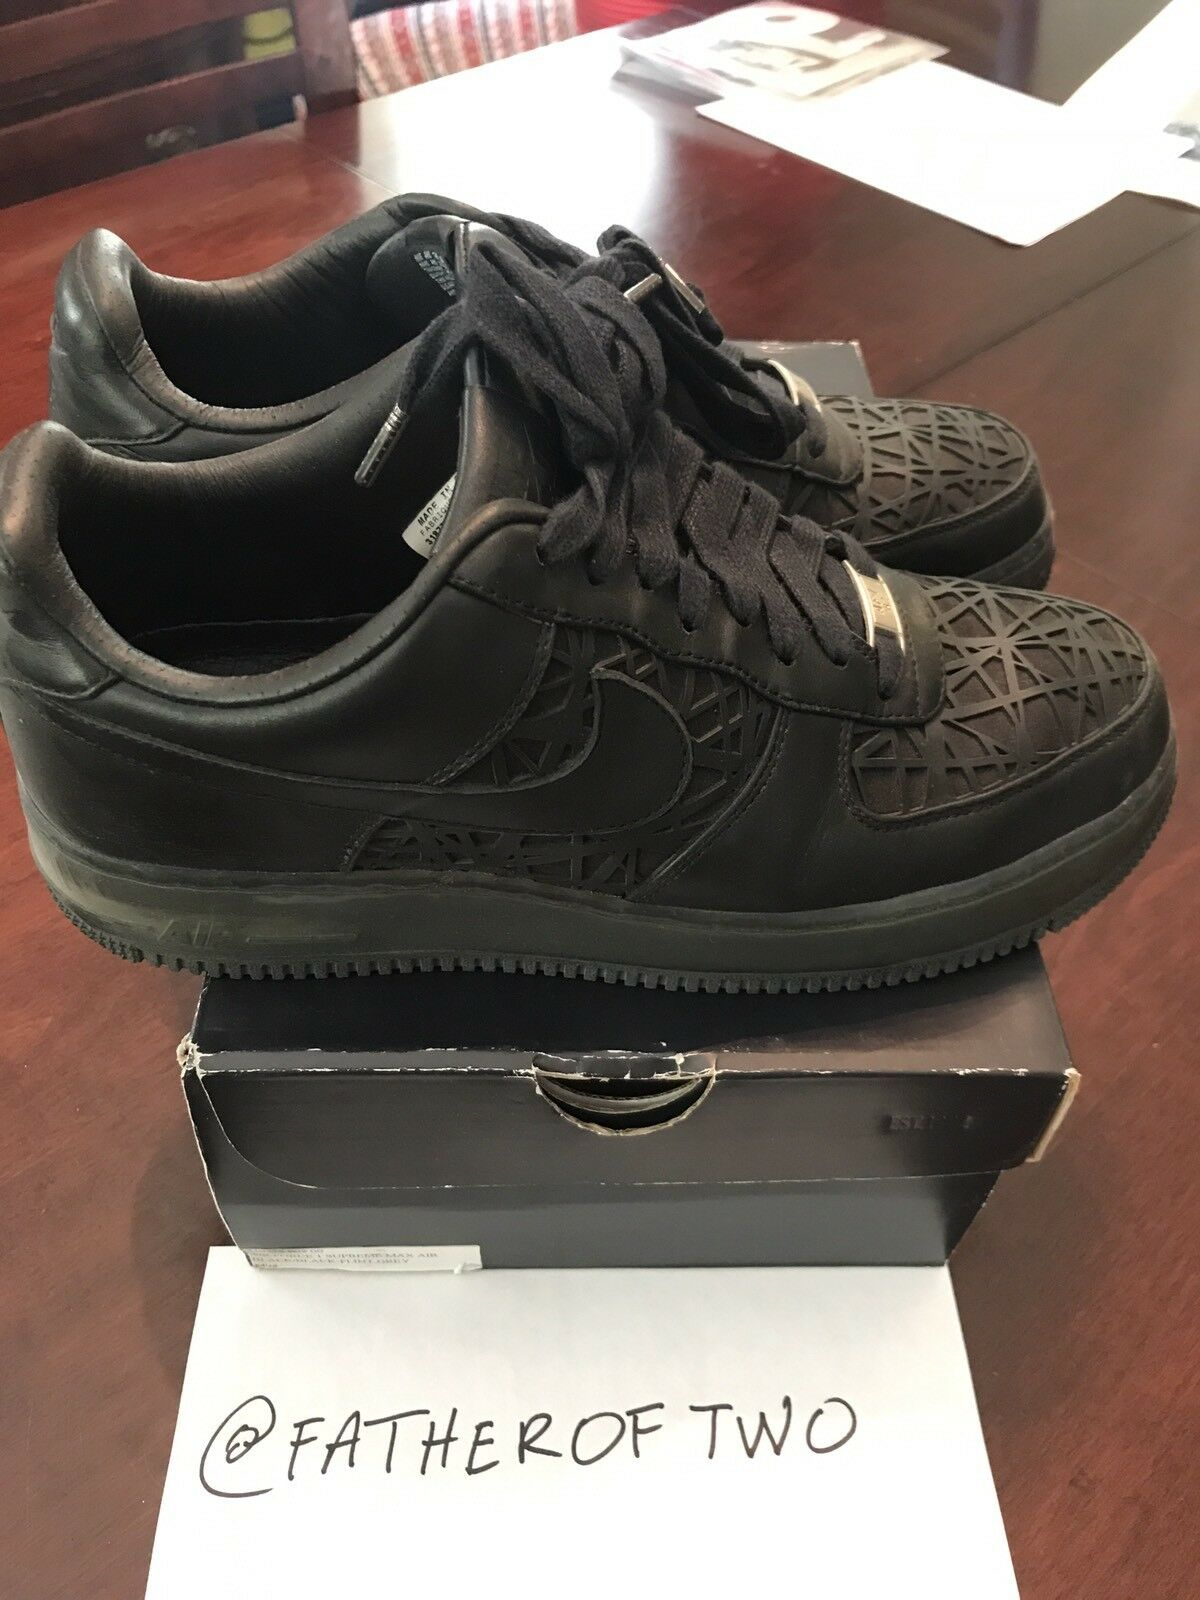 Used Authentic Nike Air Force 1 Supreme Max Black Widow 318772 002 Sample Size 9